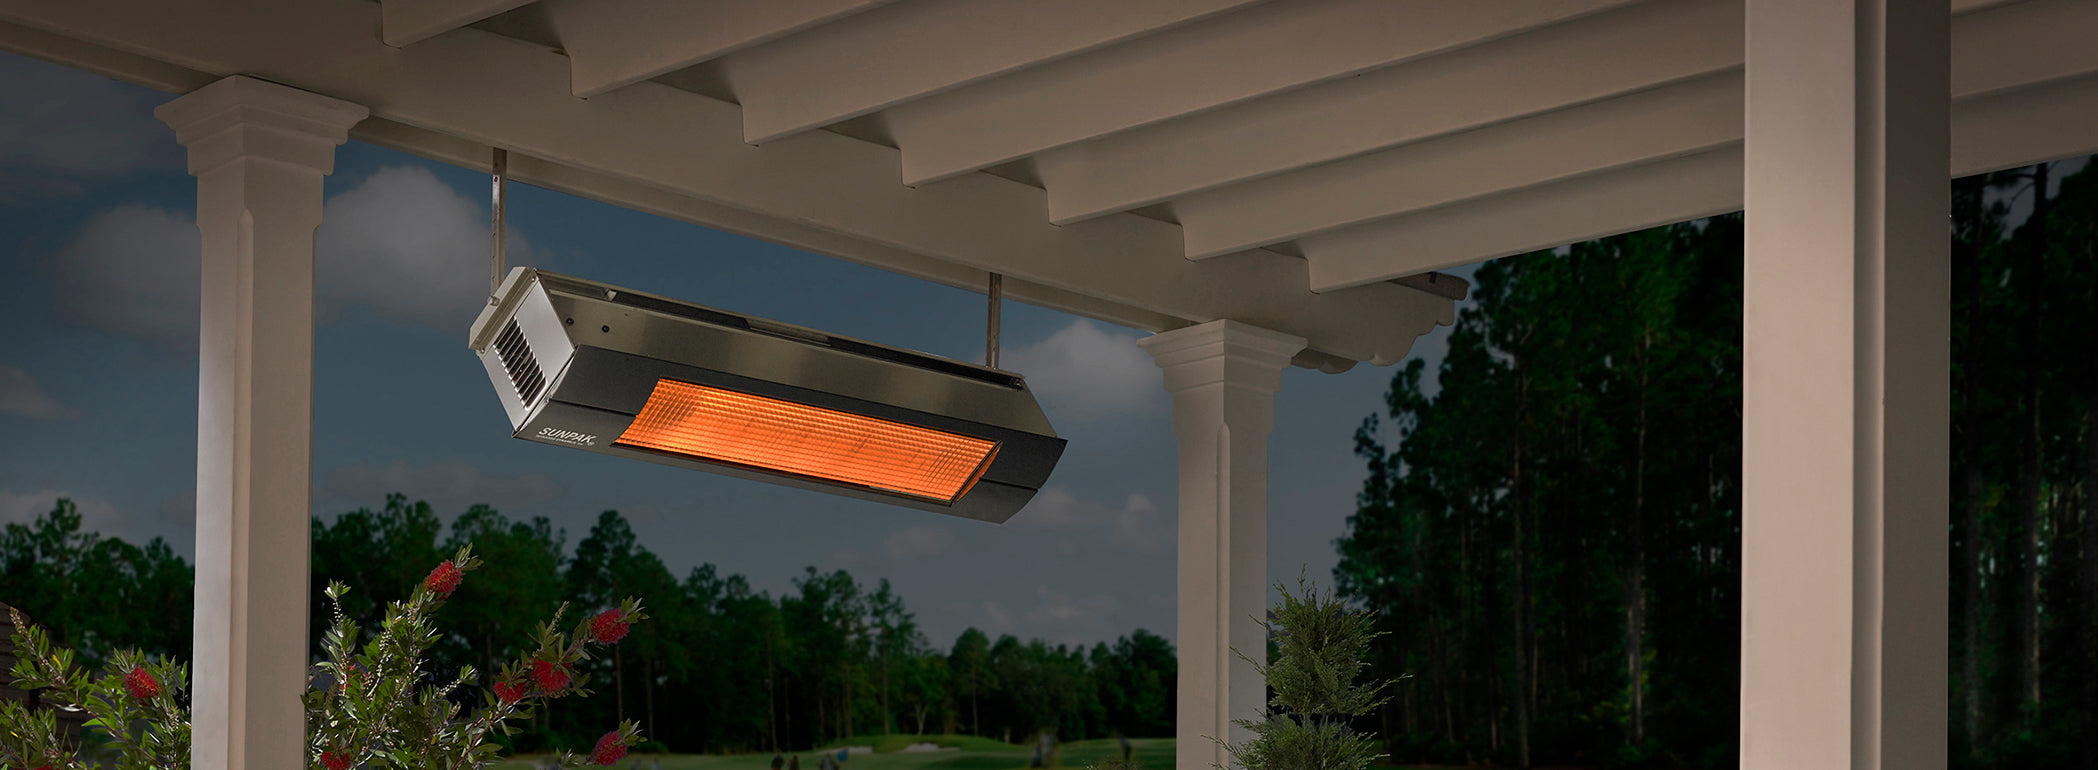 Sunpak S34 Patio Heater Blog